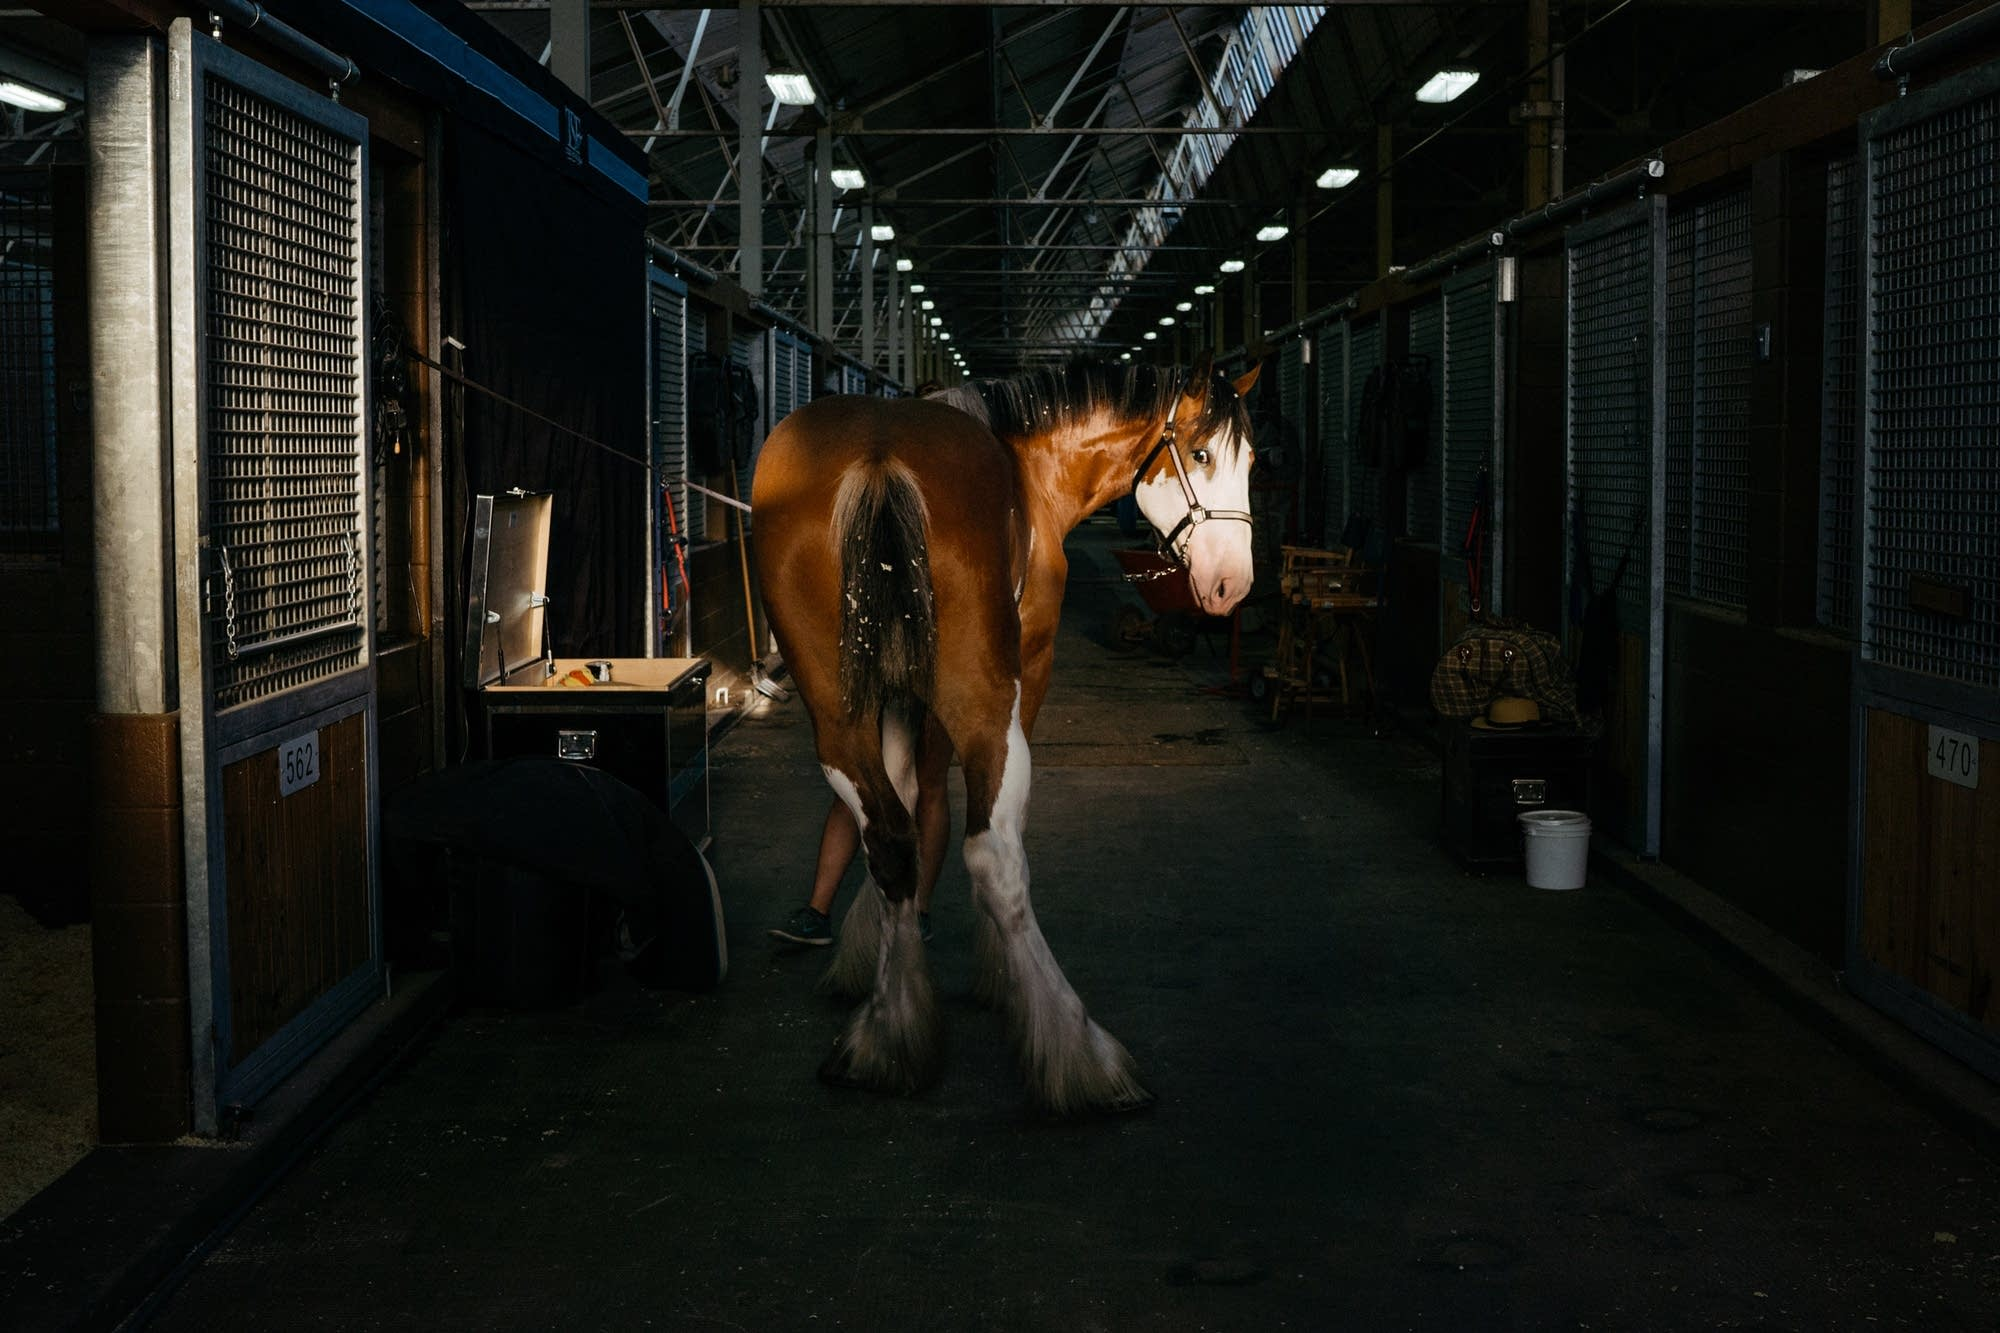 A Clydesdale named Meg waits to be groomed.